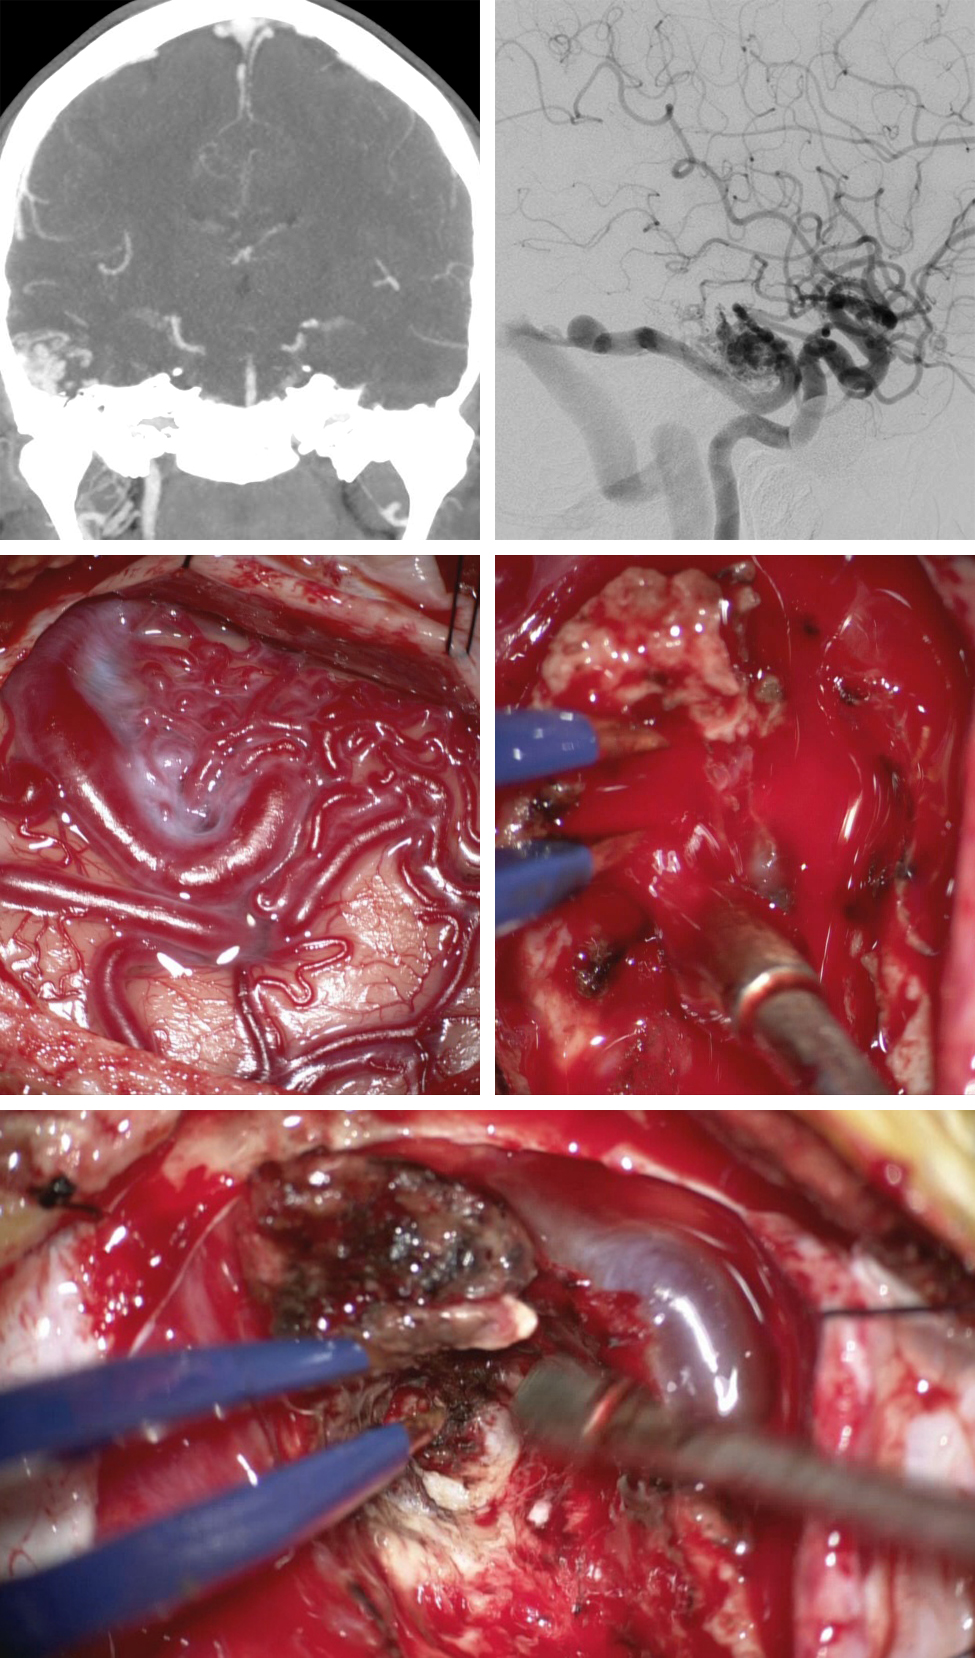 Figure 3: A relatively small lateral temporal AVM associated with an arterialized vein of Labbe underwent resection (first row). The surface anatomy of the AVM is shown; during dissection of the nidus, the dominant draining vein that was wrapping around the nidus was inadvertently injured (second row).  The AVM was removed immediately to avoid excessive bleeding and development of intracerebral hemorrhage (last row). Please see the corresponding video at the beginning of this chapter for subsequent management strategies.